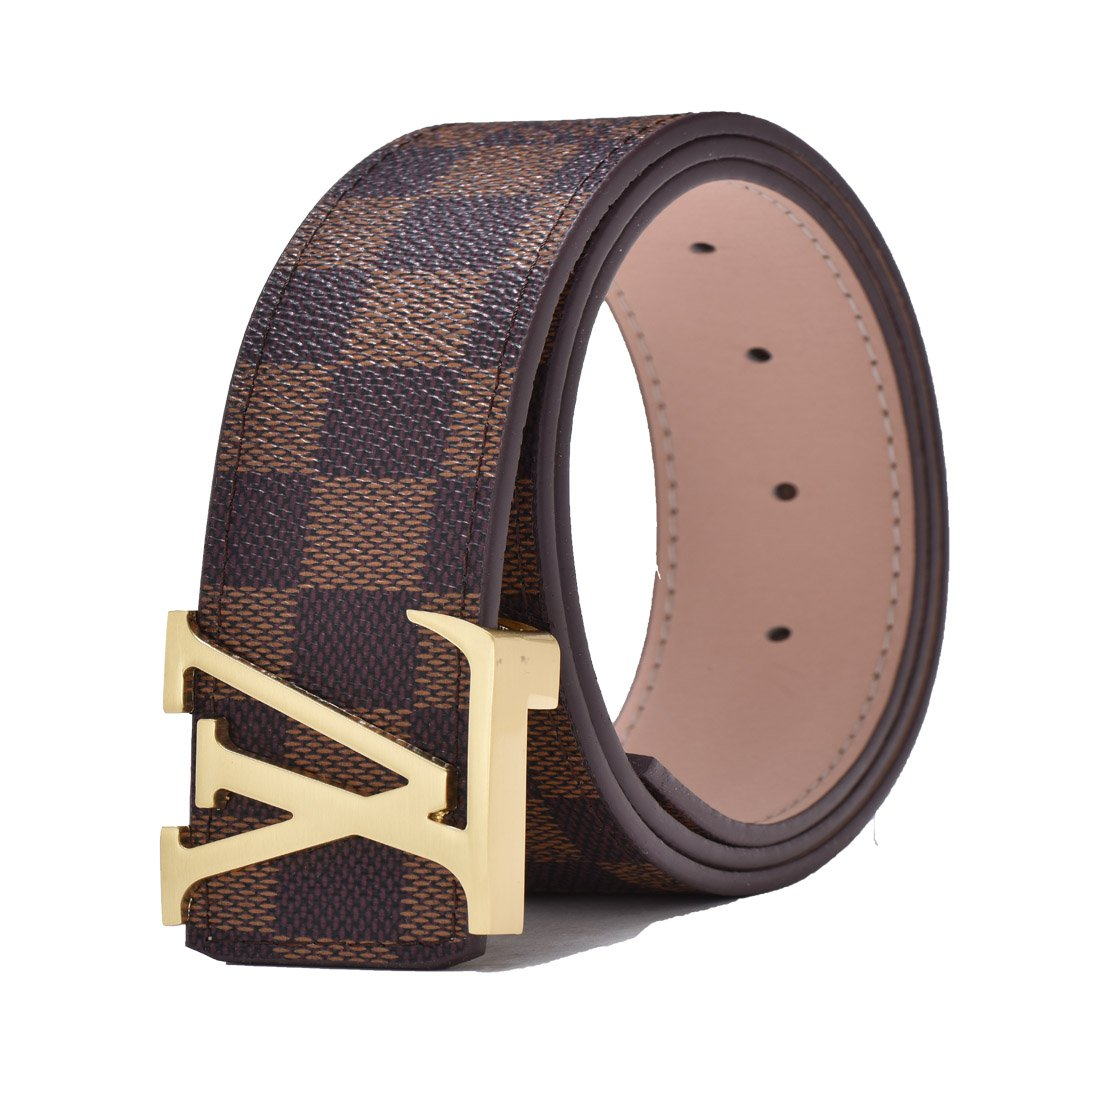 Fashion Leather Metal Buckle Unisex Belt Casual Business (Waist:30''-32'', Brown-1 belt with gold buckle)